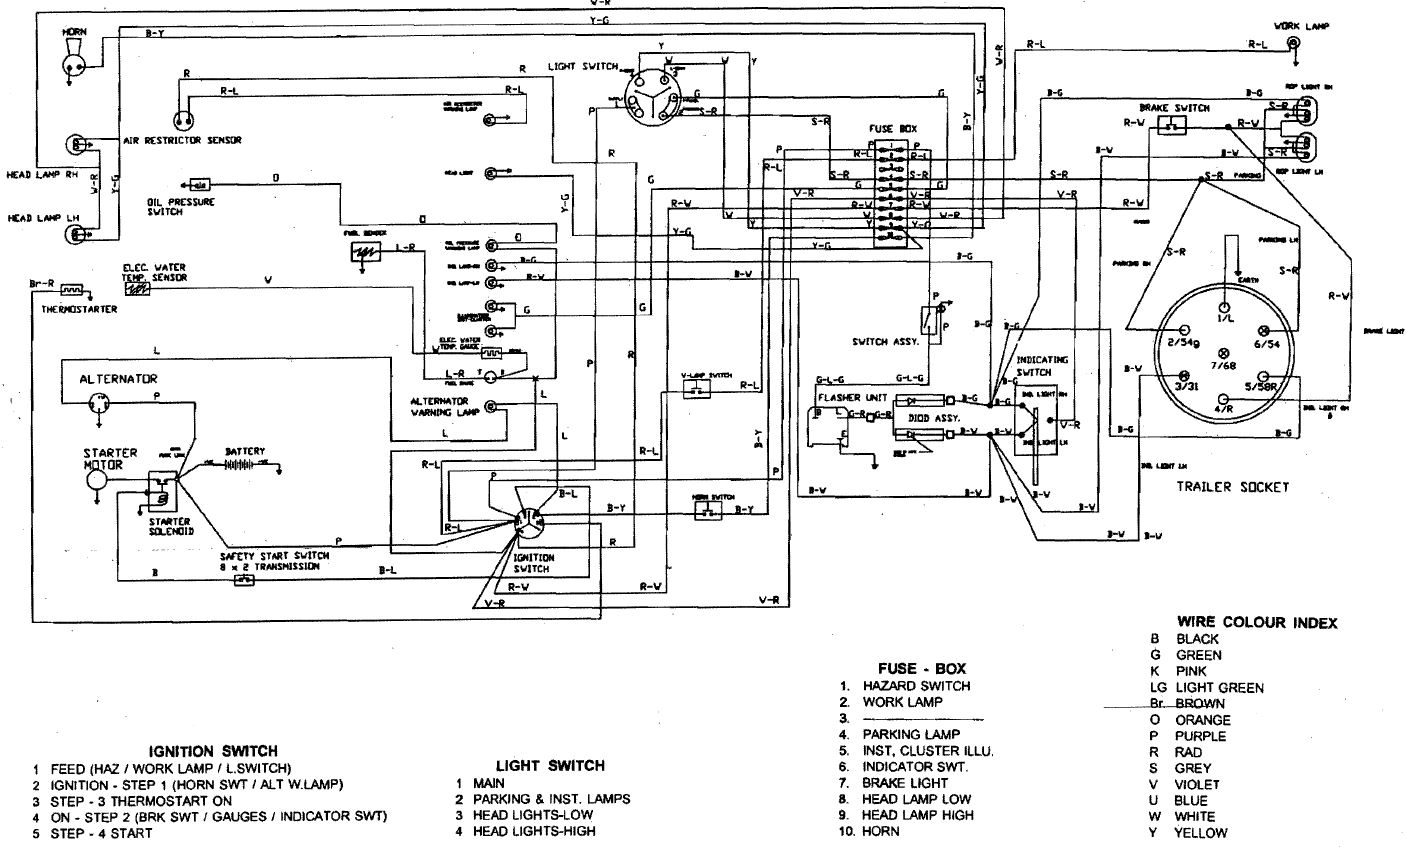 20158463319_b82d524c3d_o ignition switch wiring diagram john deere 345 wiring harness at creativeand.co